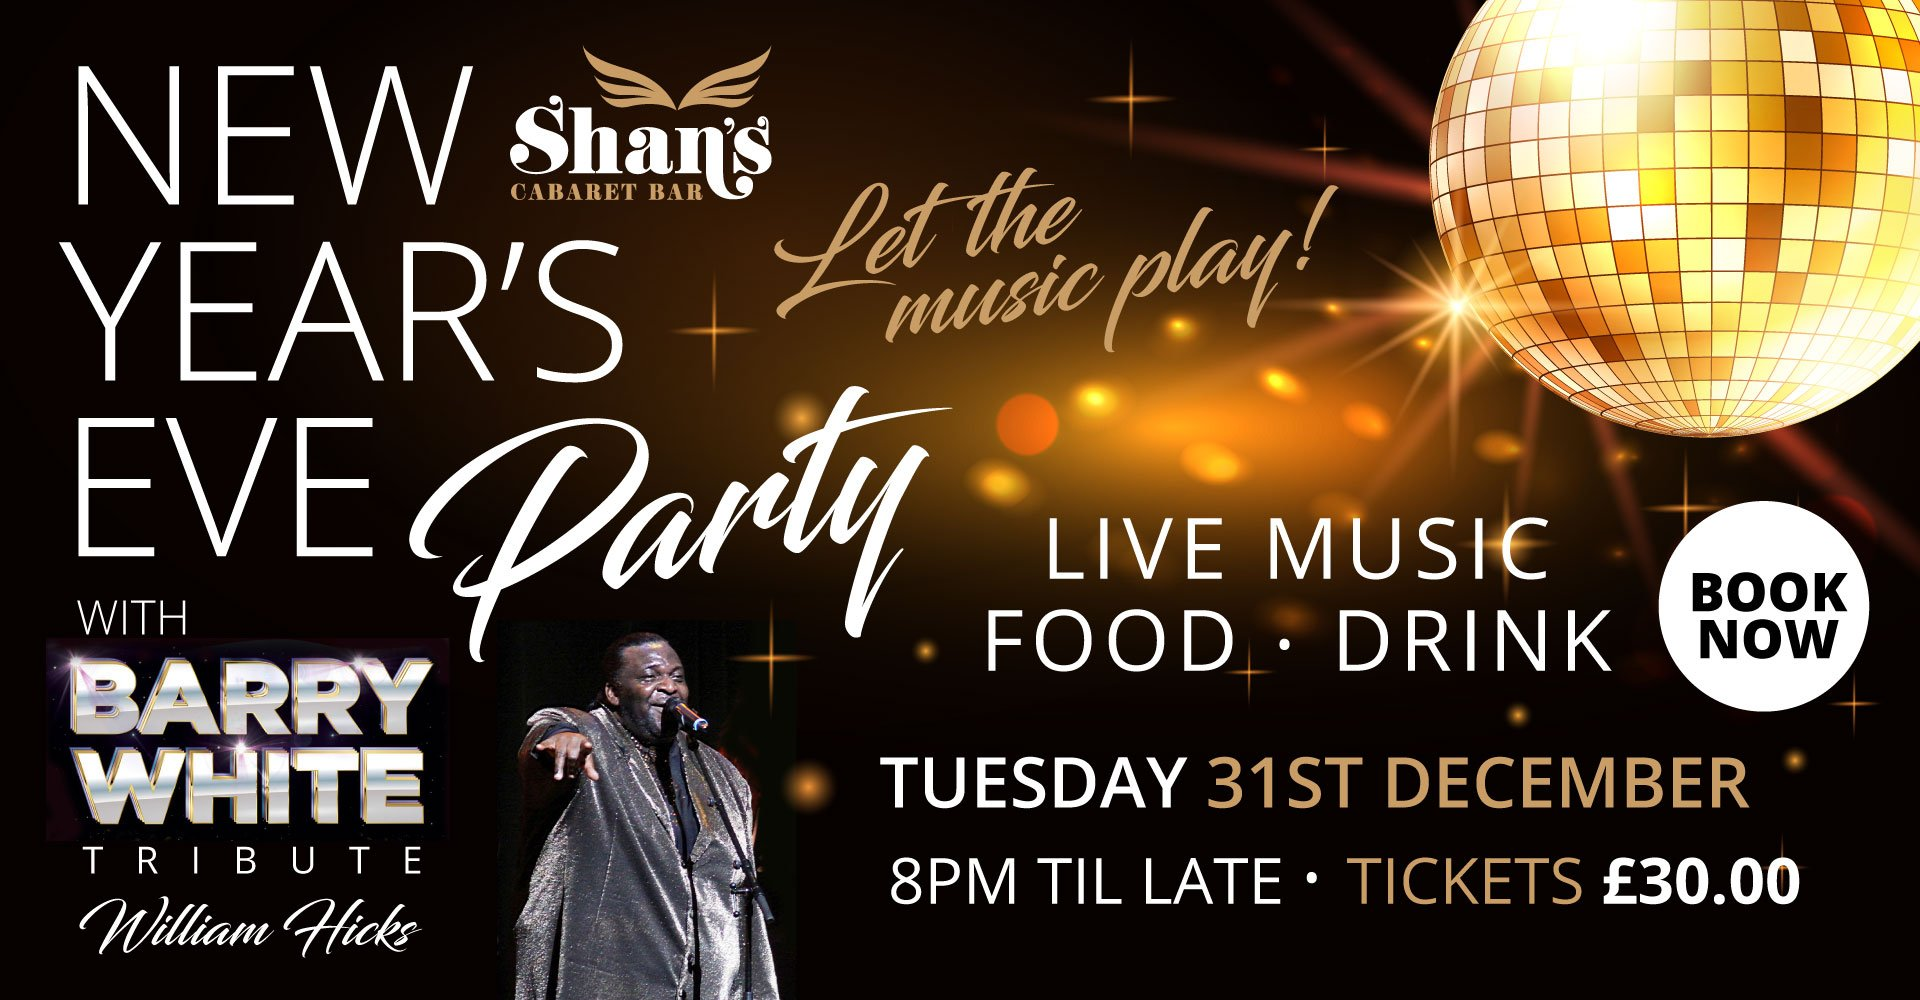 New Years Eve at Shan's with Barry White